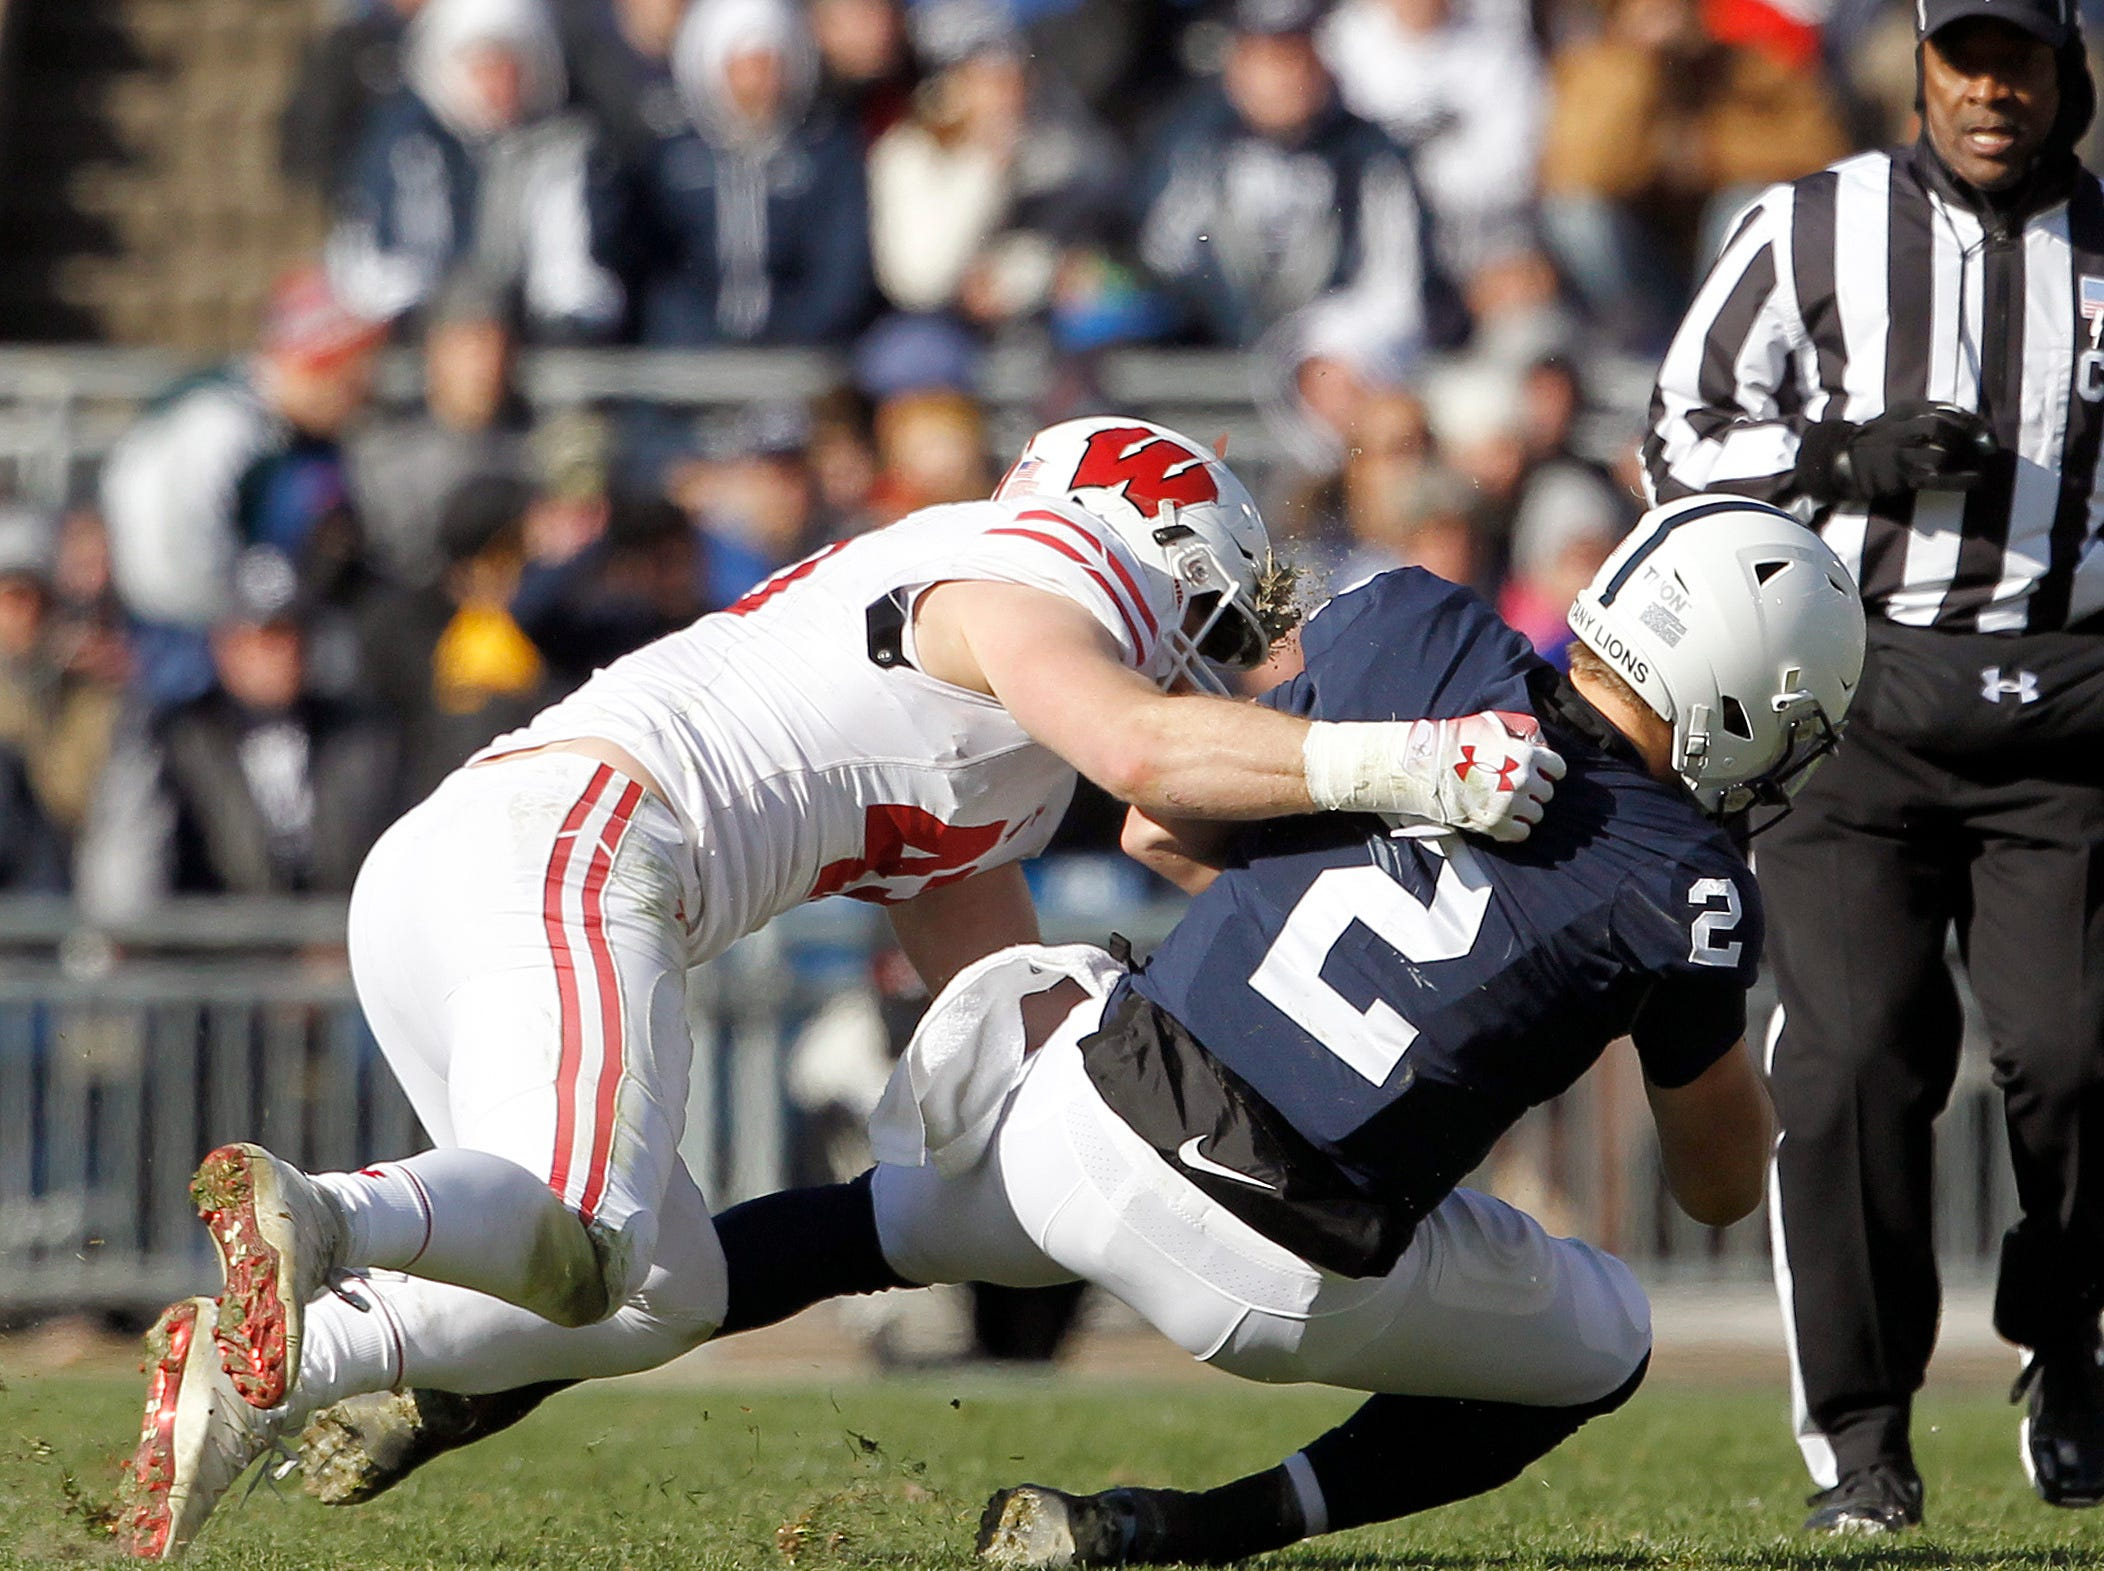 Penn State quarterback Tommy Stevens (2) is sacked by Wisconsin Jack Connelly (43) during the first half of an NCAA college football game in State College, Pa., Saturday, Nov. 10, 2018.